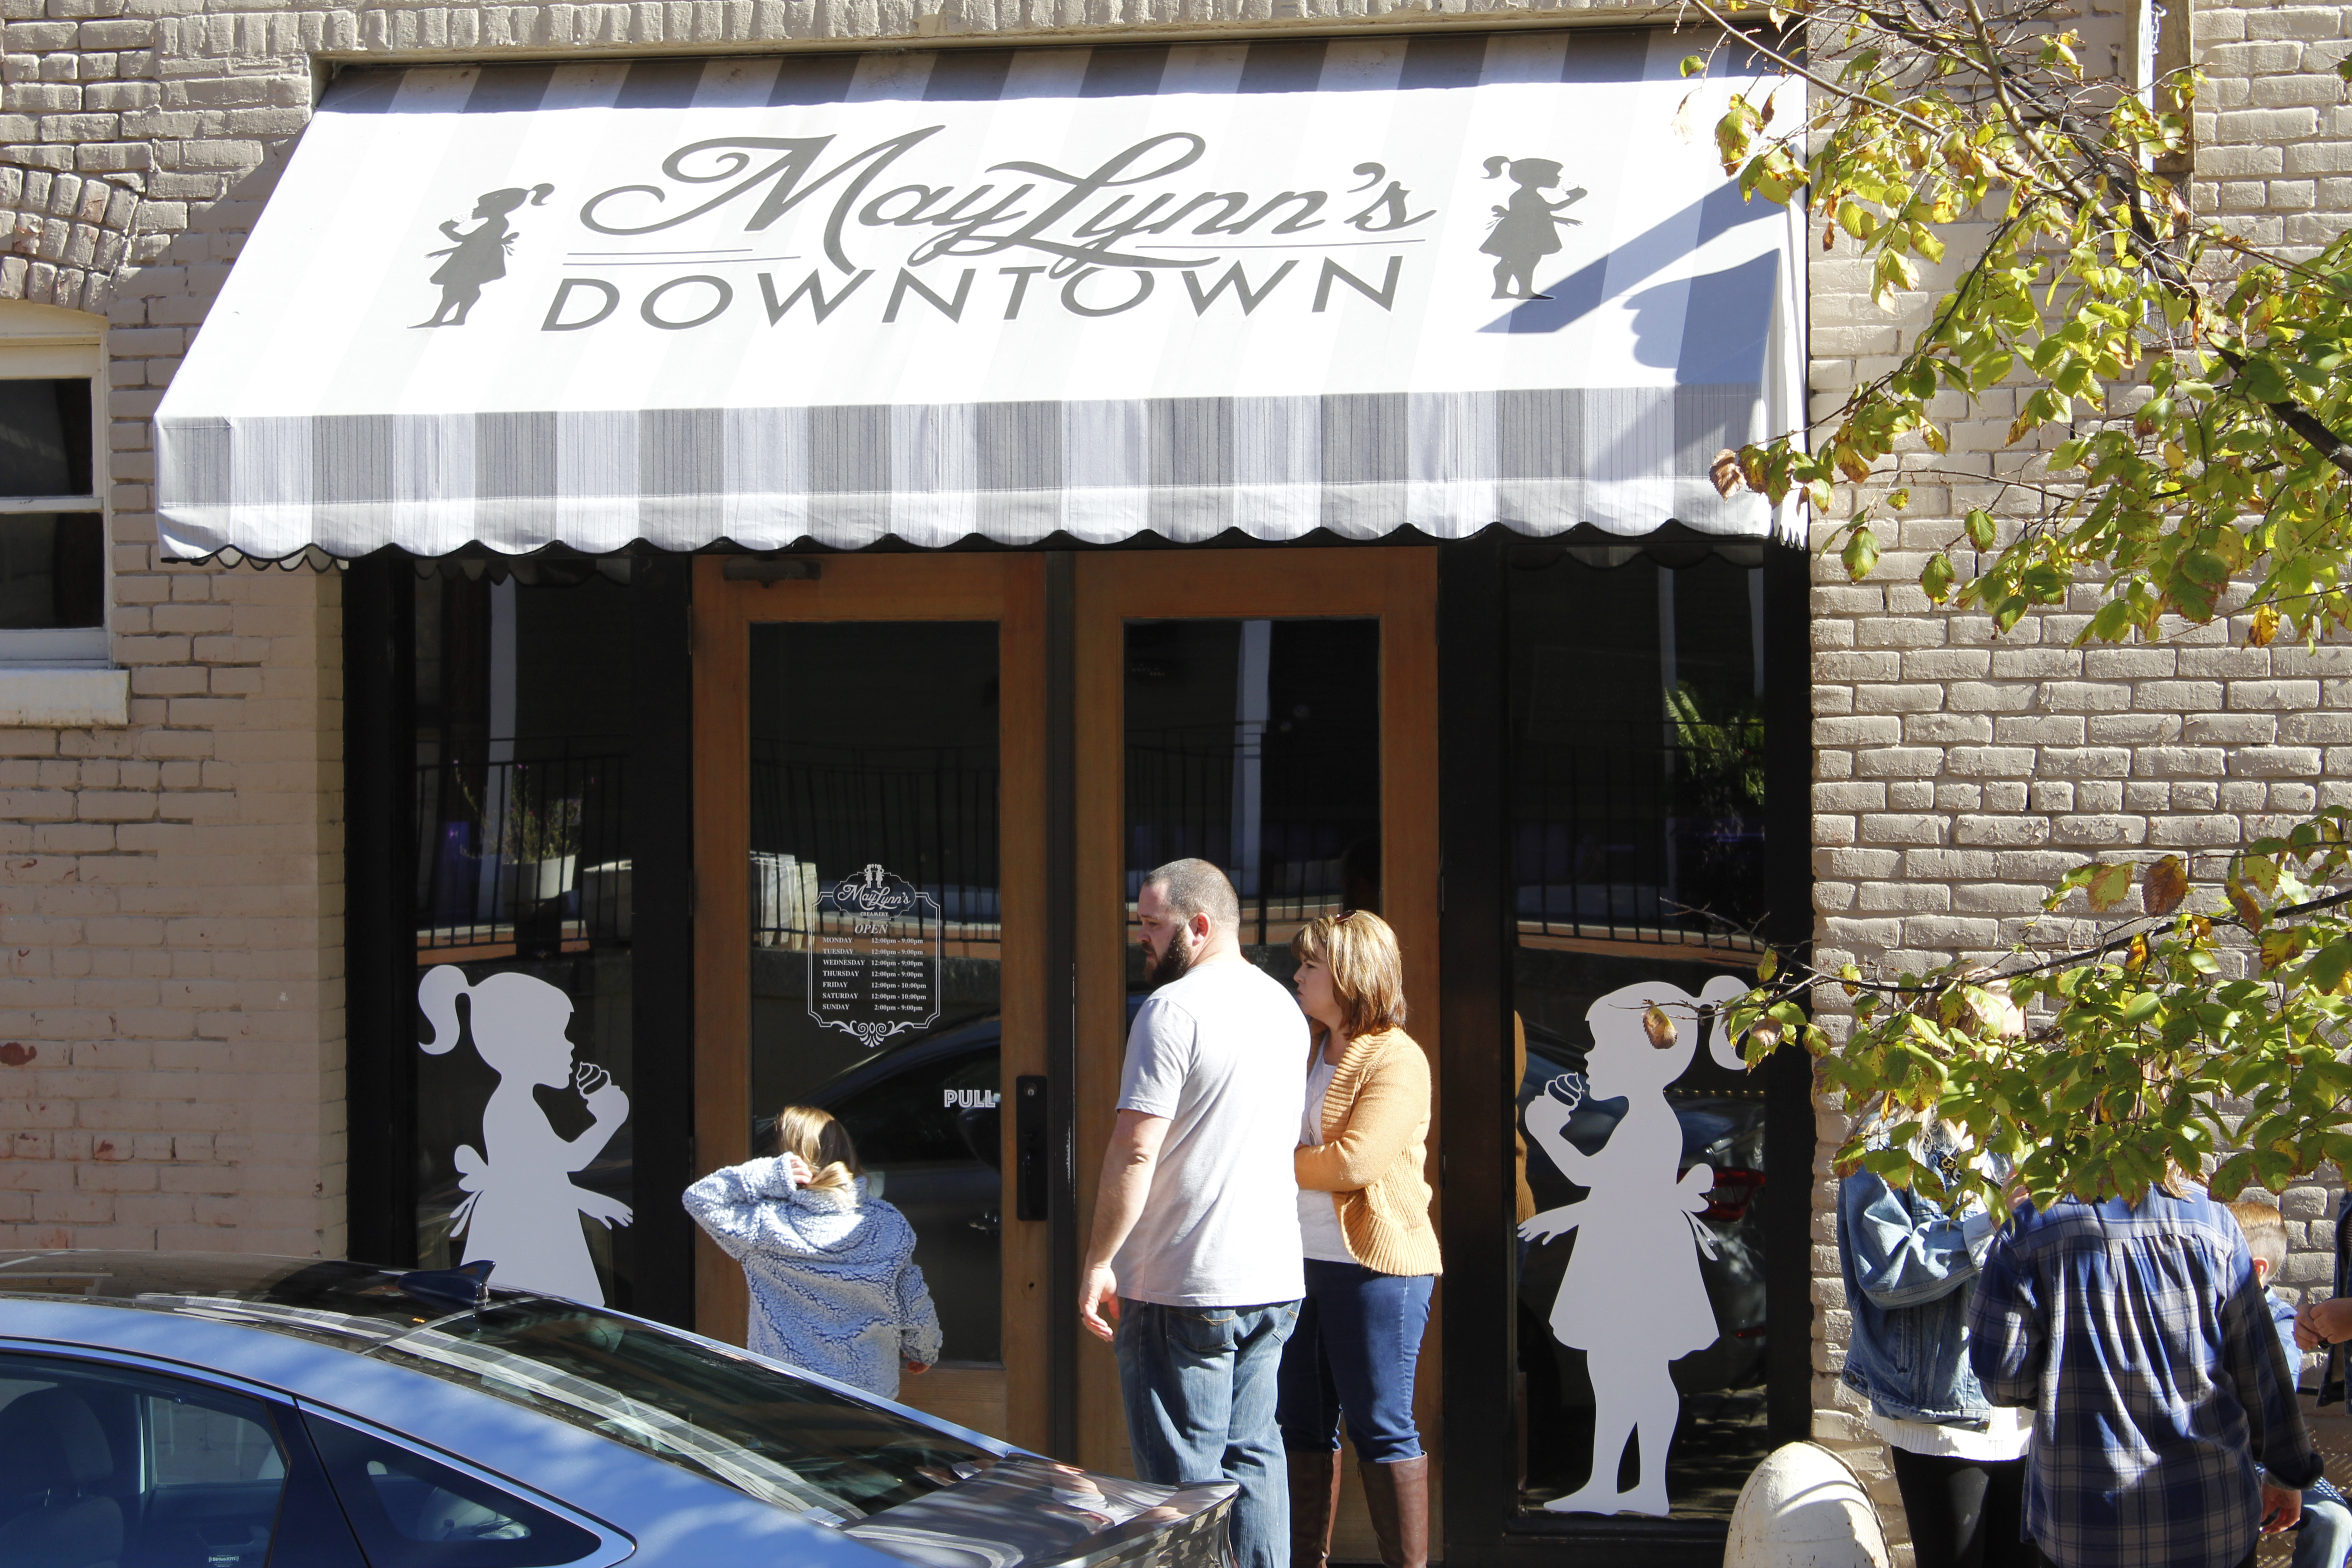 MayLynn's downtown store front